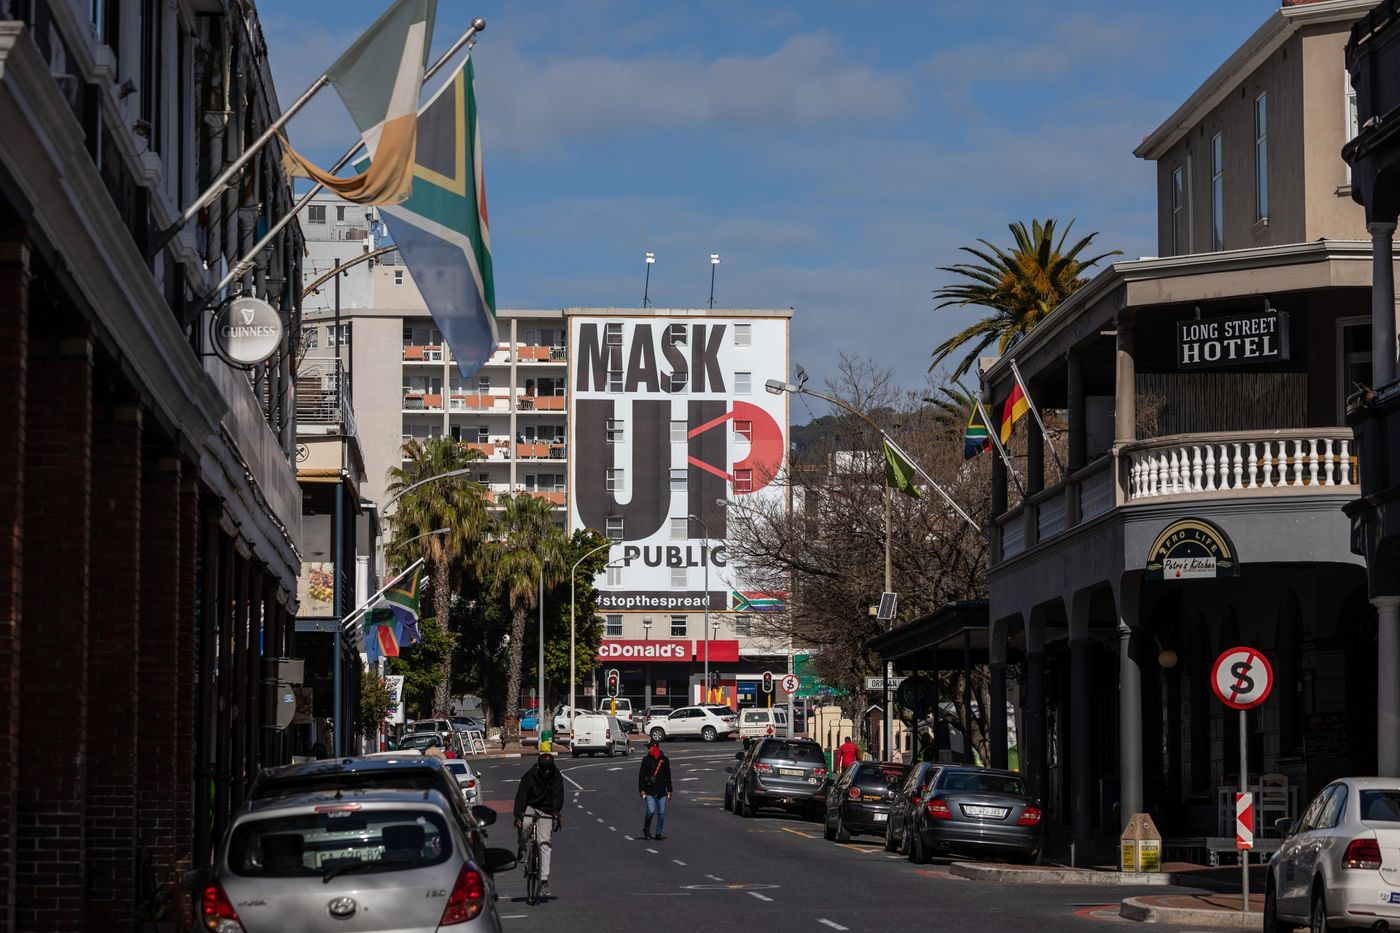 A 'mask up' billboard covers the front of a building in Cape Town on Aug. 19.